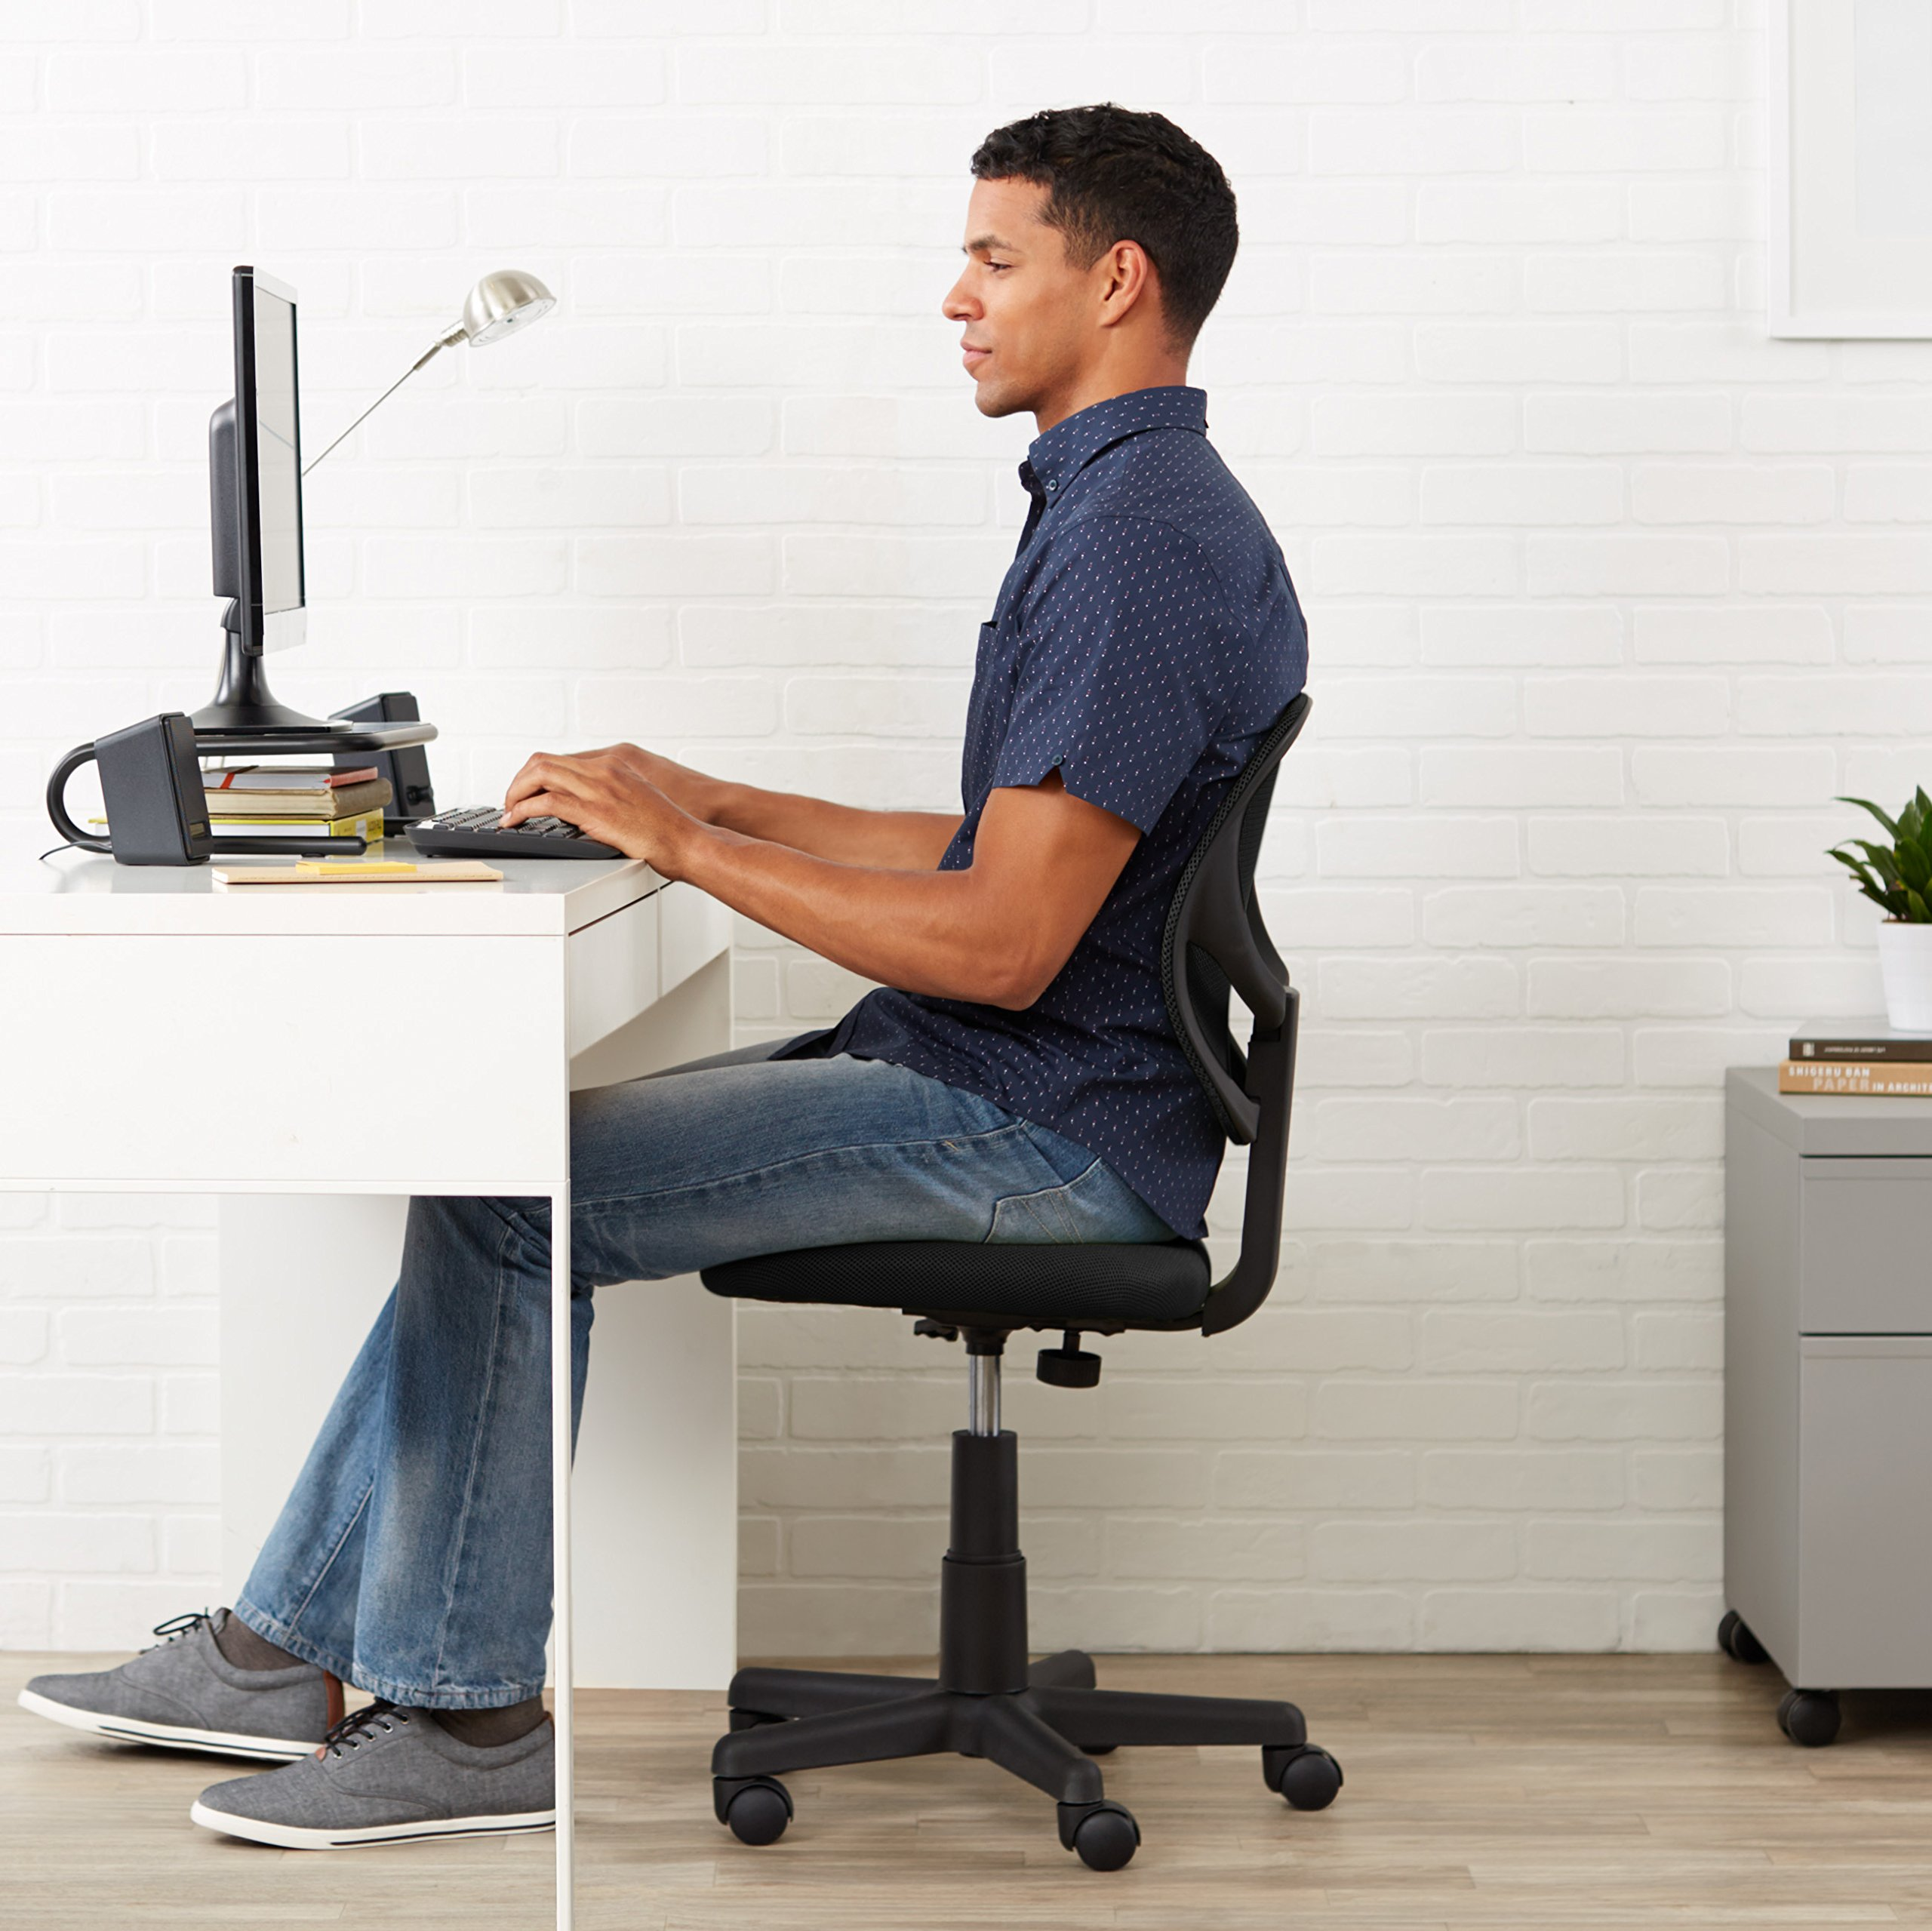 AmazonBasics Low-Back Computer Task/Desk Chair with Swivel Casters - Black by AmazonBasics (Image #2)